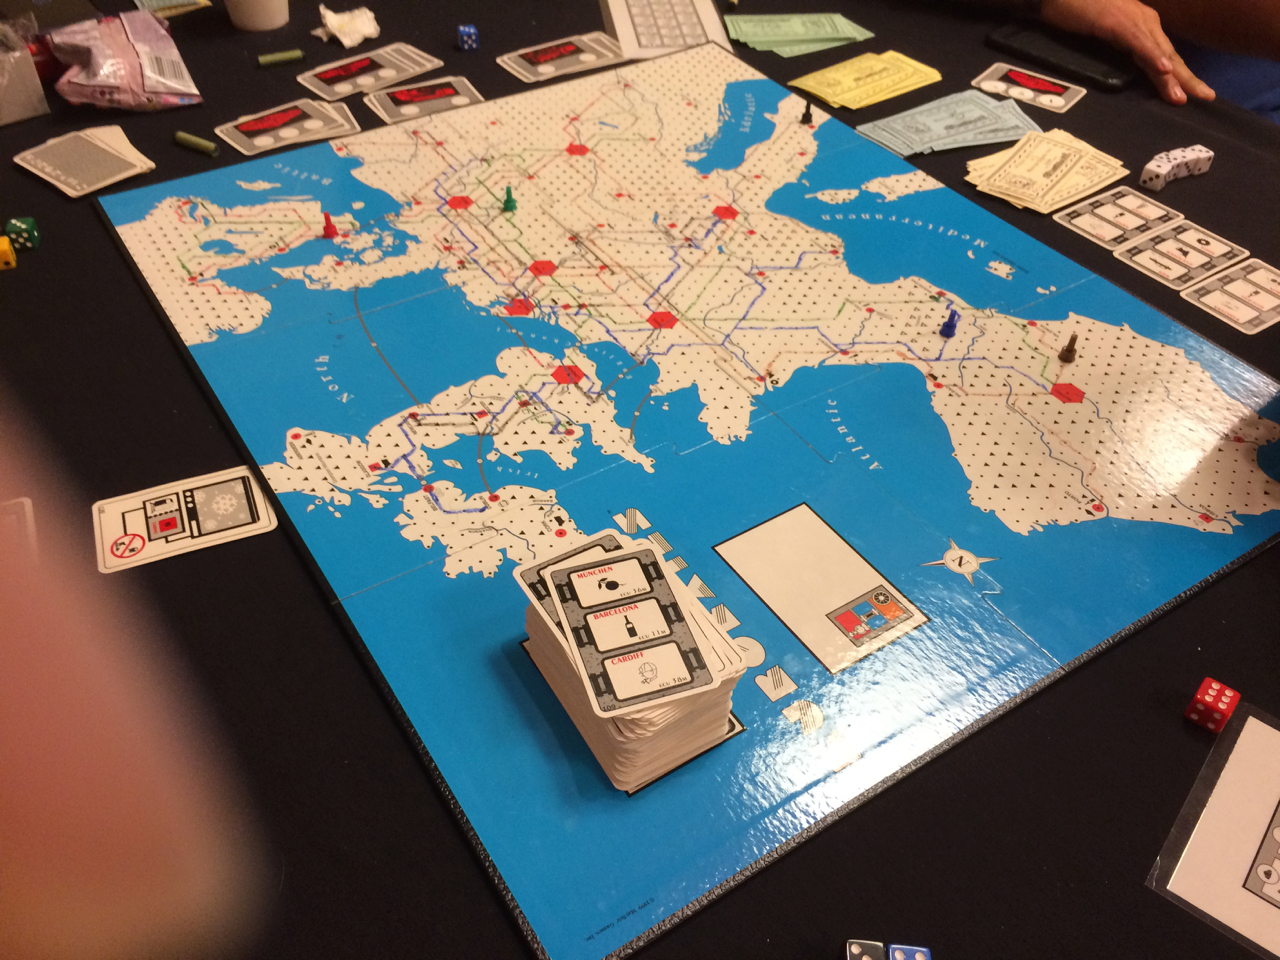 First game on the table: Eurorail. Unfinished, but I was the acknowledged winner.